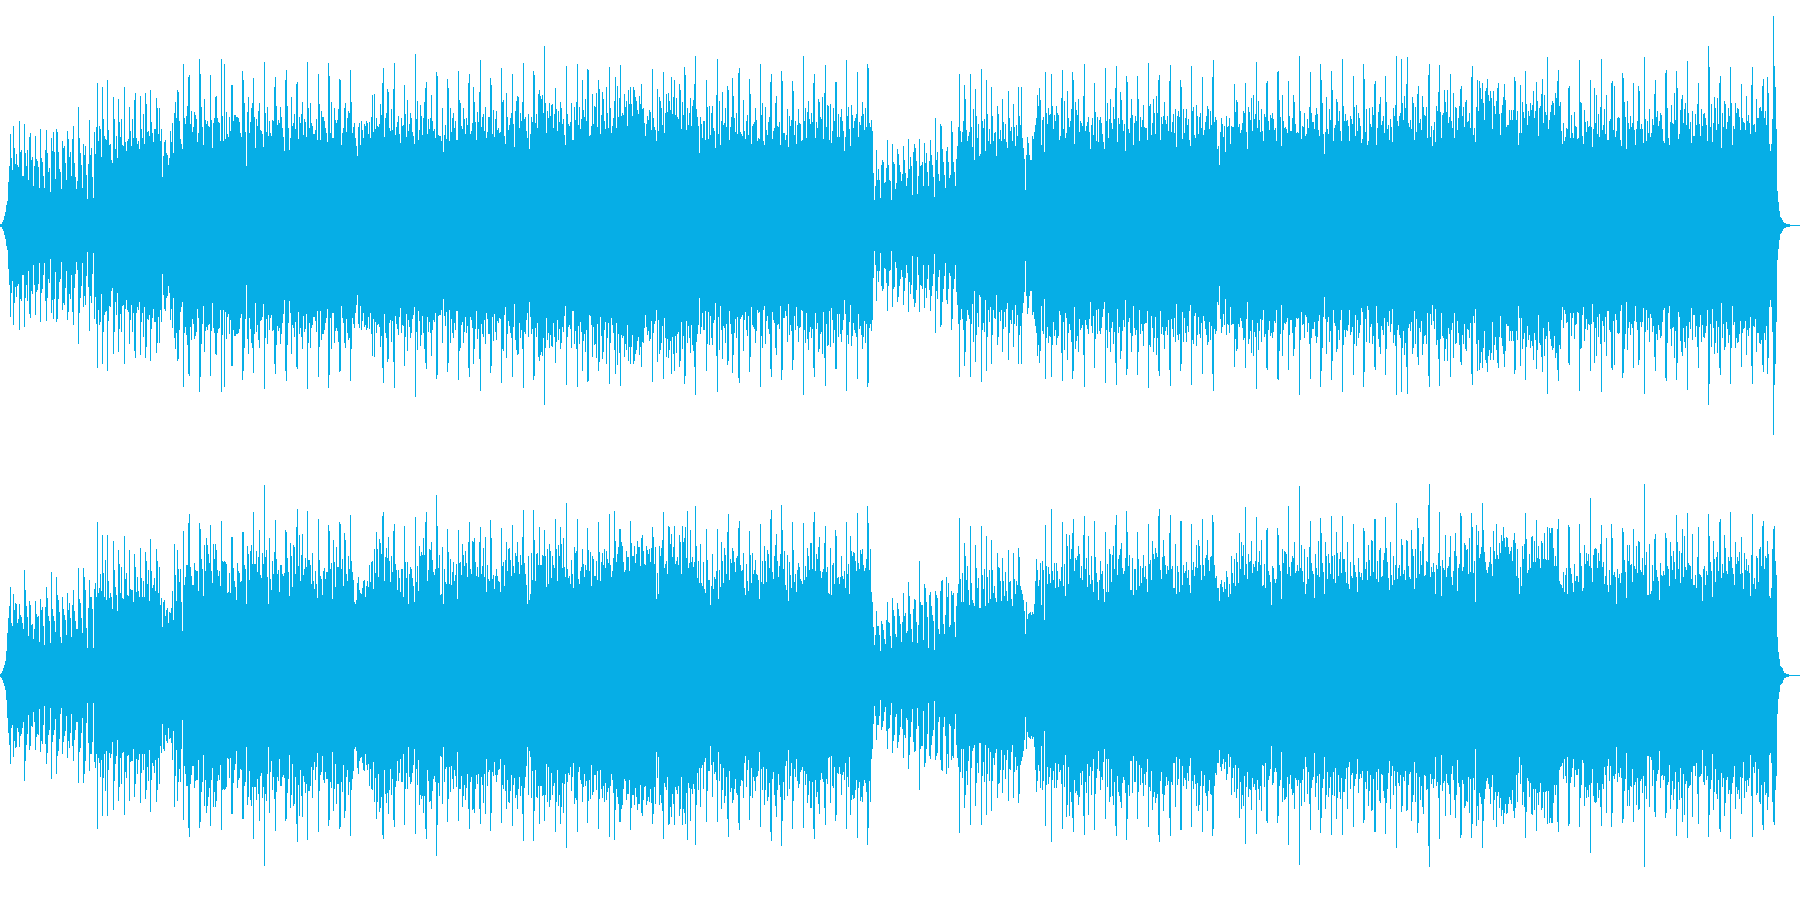 A feeling of running, retro, cool, flashy, mysterious's reproduced waveform